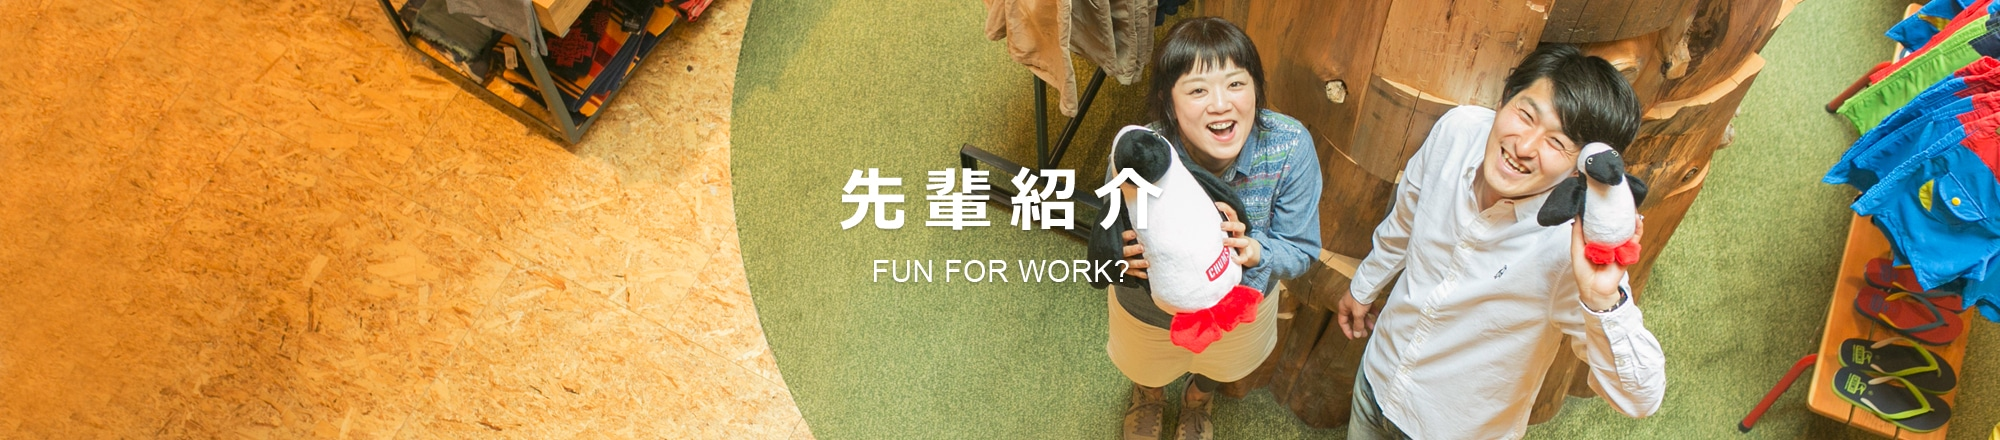 先輩紹介 FUN FOR WORK?